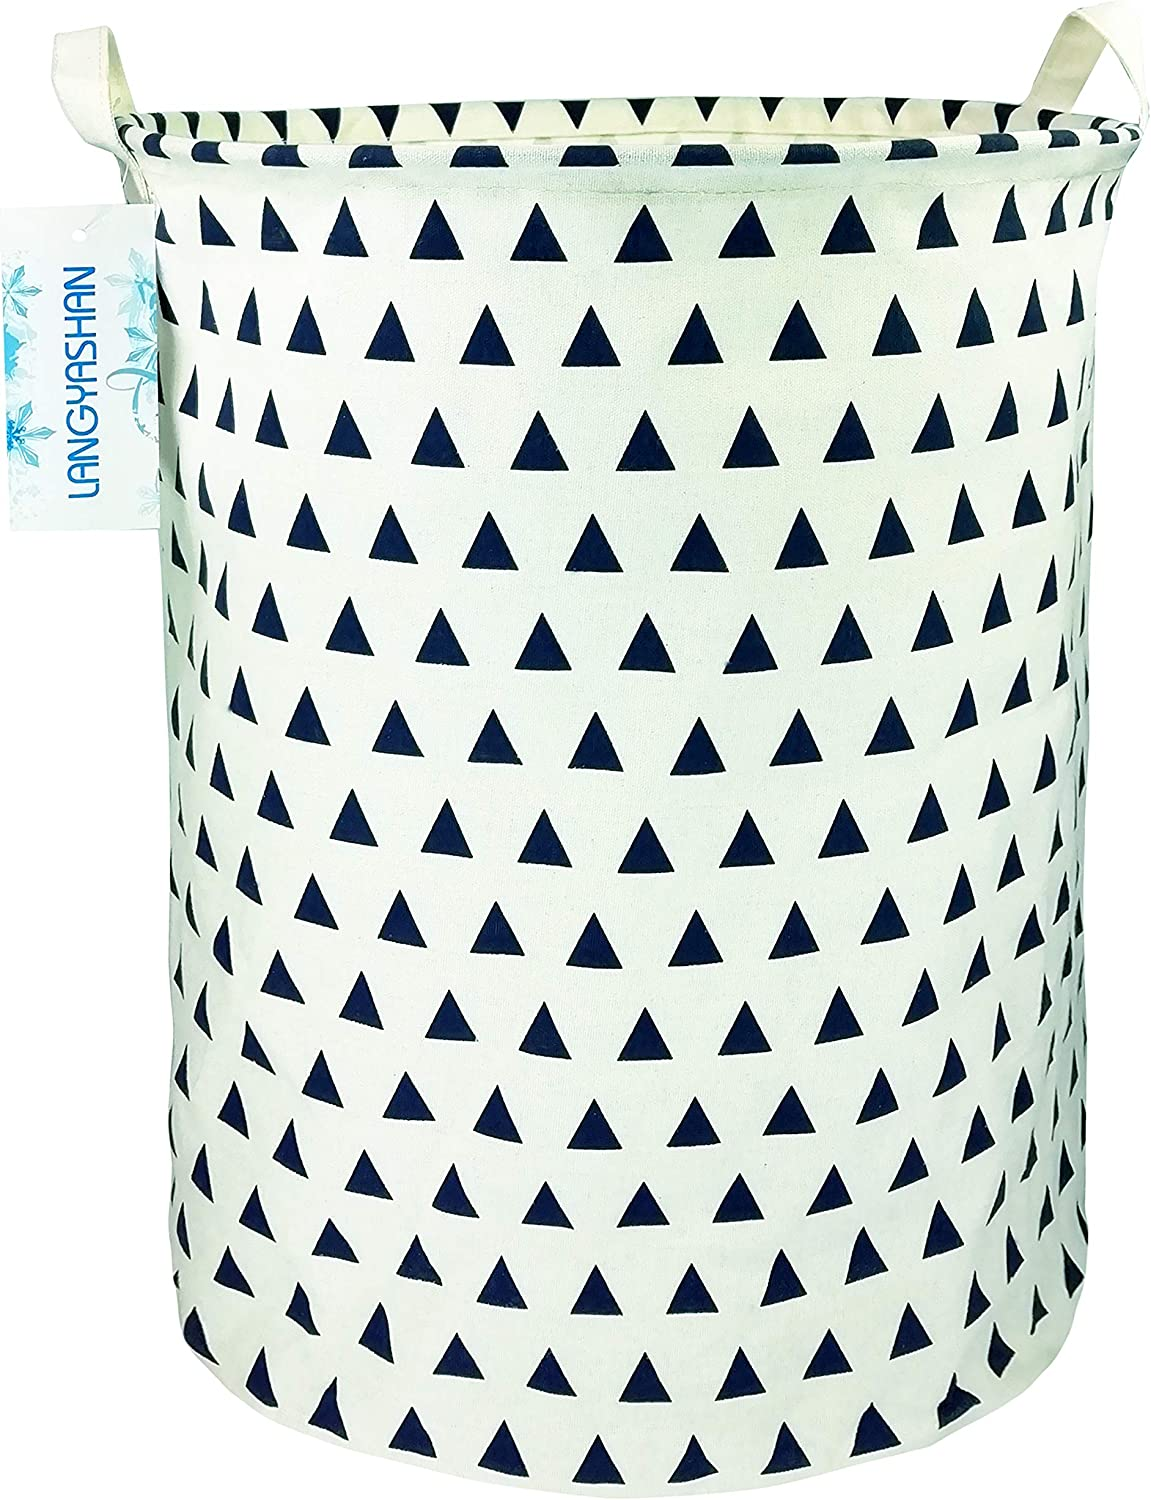 LANGYASHAN Storage Bin,Canvas Fabric Collapsible Organizer Basket for Laundry Hamper,Toy Bins,Gift Baskets, Bedroom, Clothes,Baby Nursery (Navy Triangle)